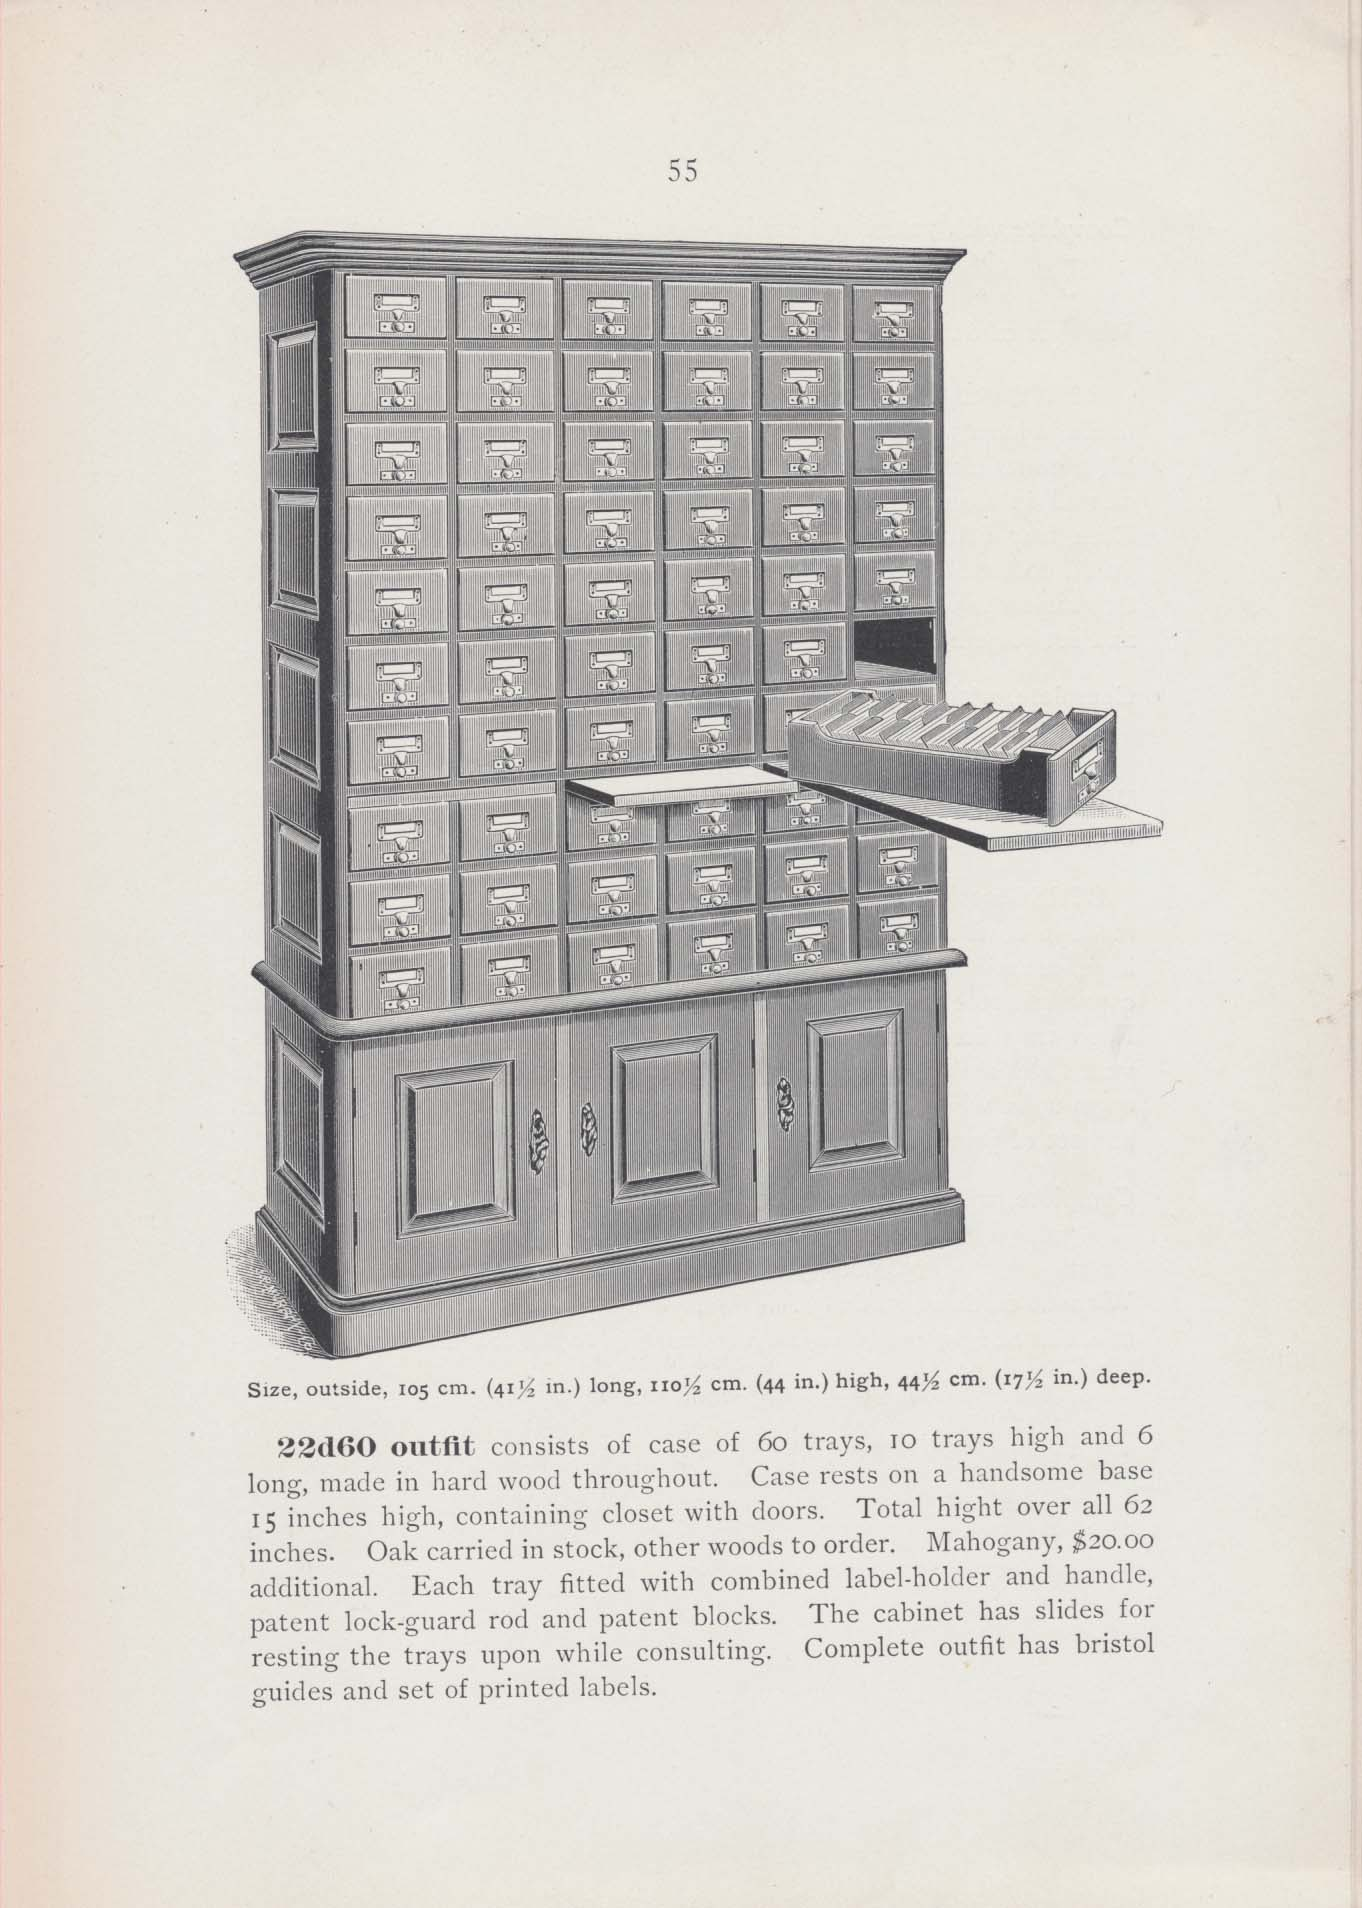 60 tray card catalog with one tray resting on platform